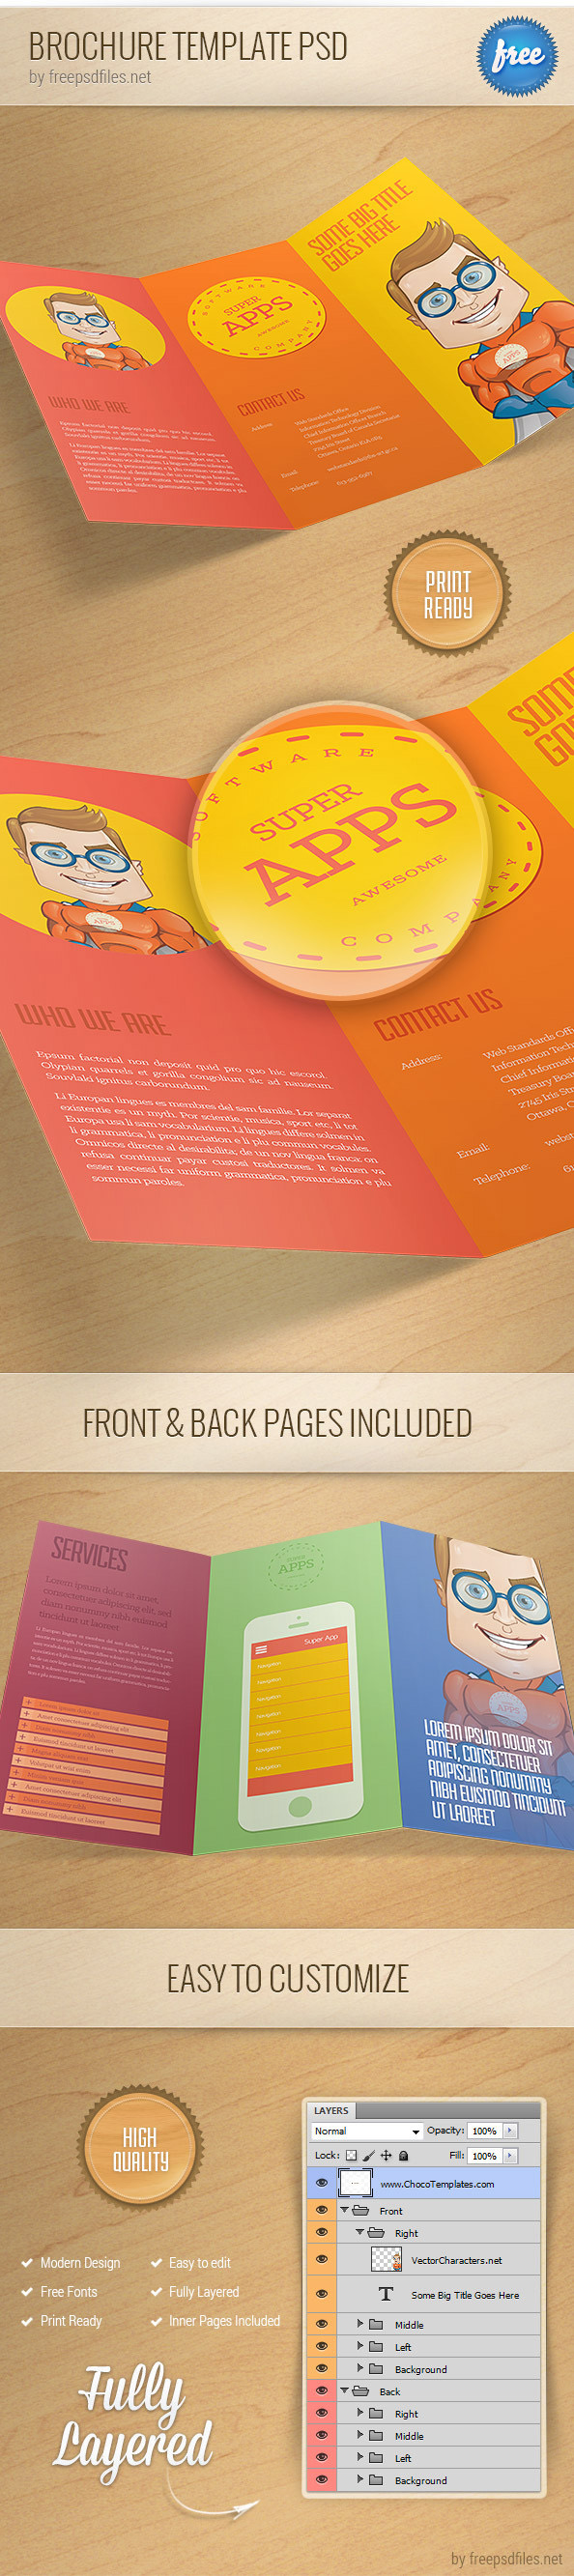 Brochure_Template_PSD_1_Preview - Visitenkarten